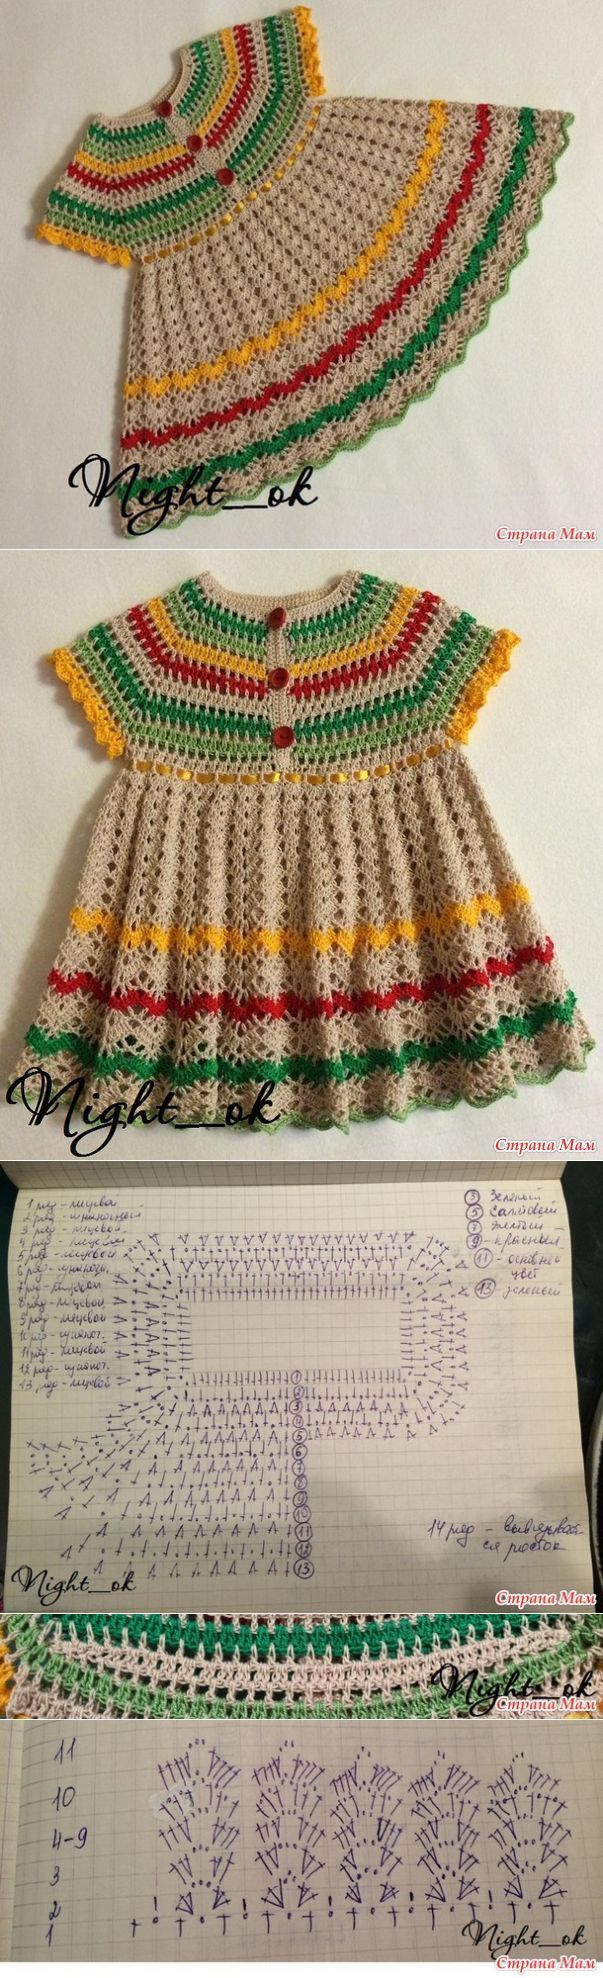 "* Alineada multicolor. Agregar gráficos - todo en calados ... (ganchillo) - País mamá [   ""Bullet Journal Craft Layout - Keep Track of Your Crochet Patterns by Bullet Journaling in your BuJo or Planner"",   "" Add charts - all in openwork ."" ] #<br/> # #Crochet #Dresses,<br/> # #Crochet #Baby,<br/> # #Charts,<br/> # #Baby #Dresses,<br/> # #Crochet #Patterns,<br/> # #Bullet #Journal,<br/> # #Bullets,<br/> # #Bodice,<br/> # #Journaling<br/>"